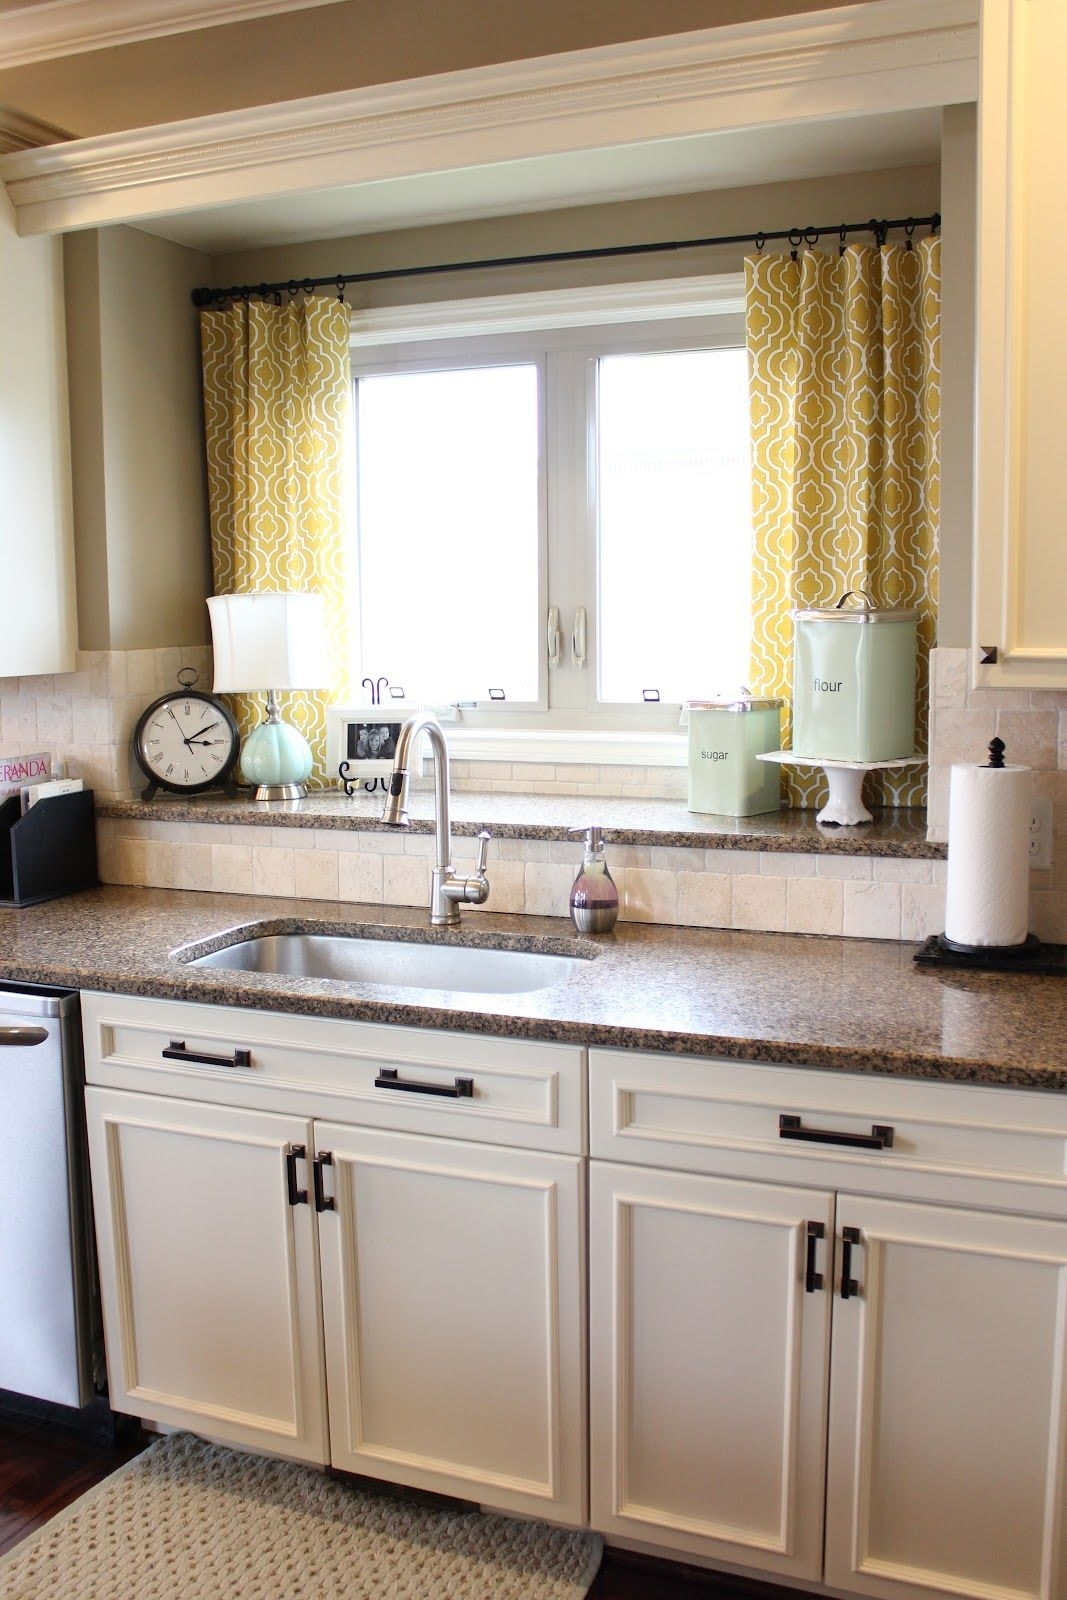 love the double window sill for storagedecor over the sink